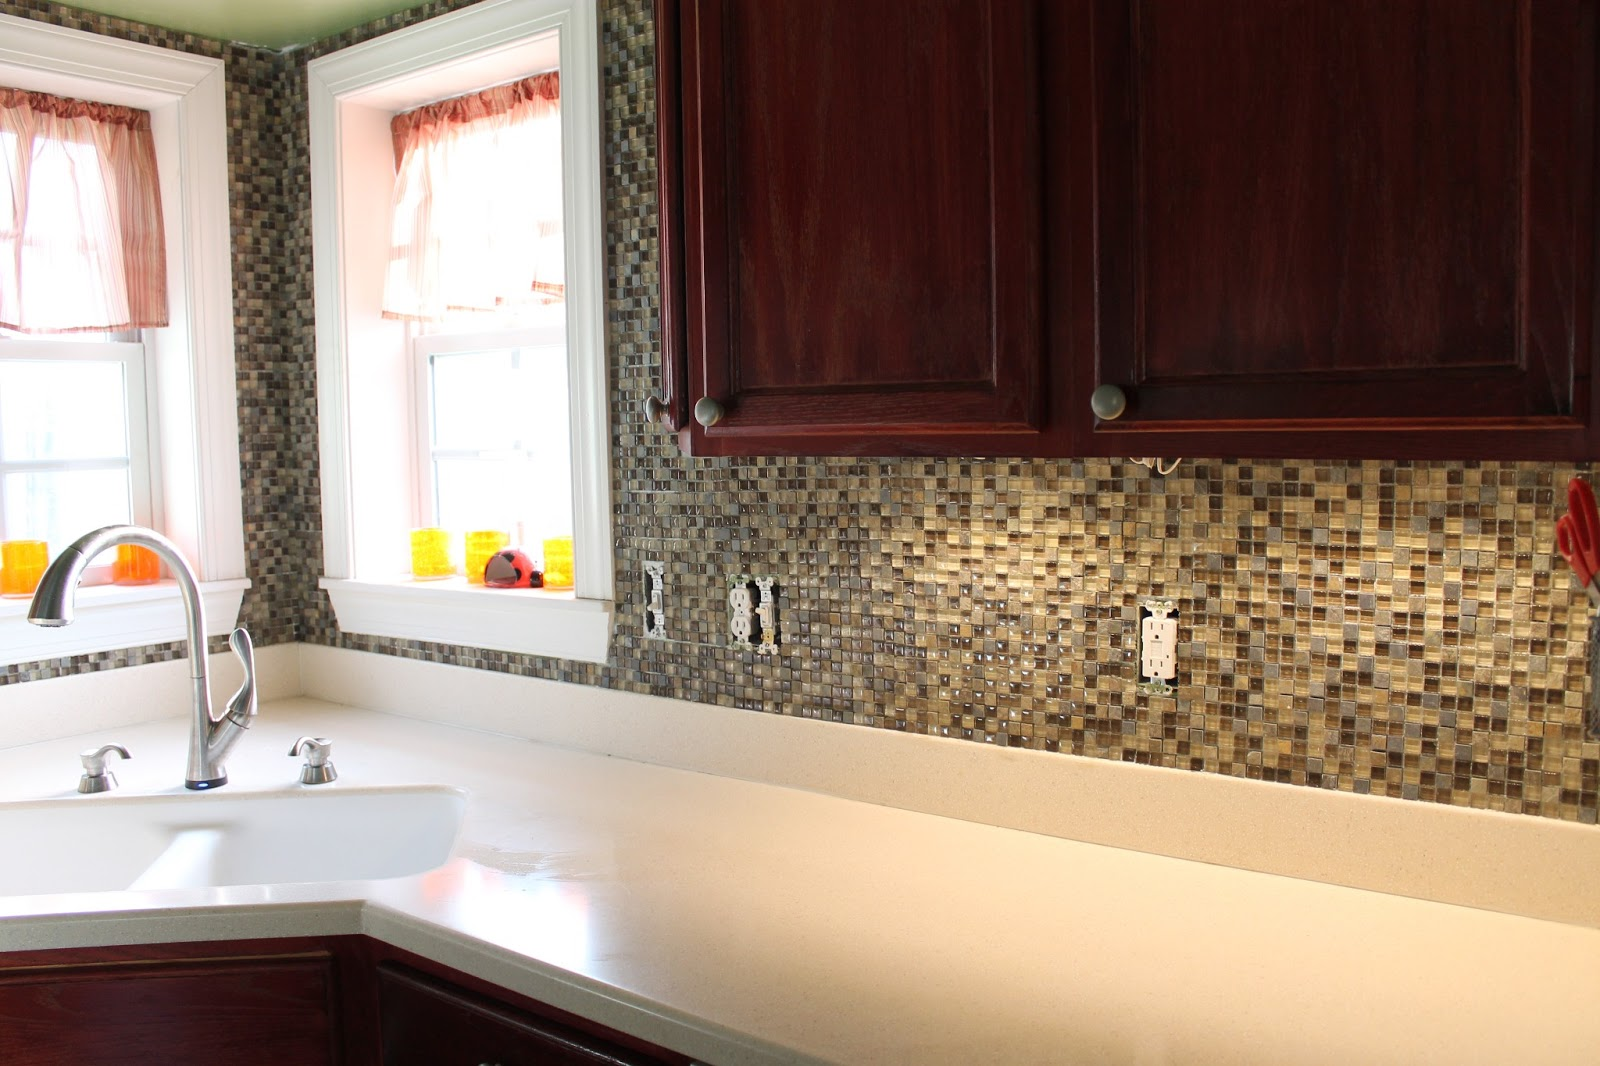 How to put up a backsplash in kitchen for Bathroom backsplash ideas